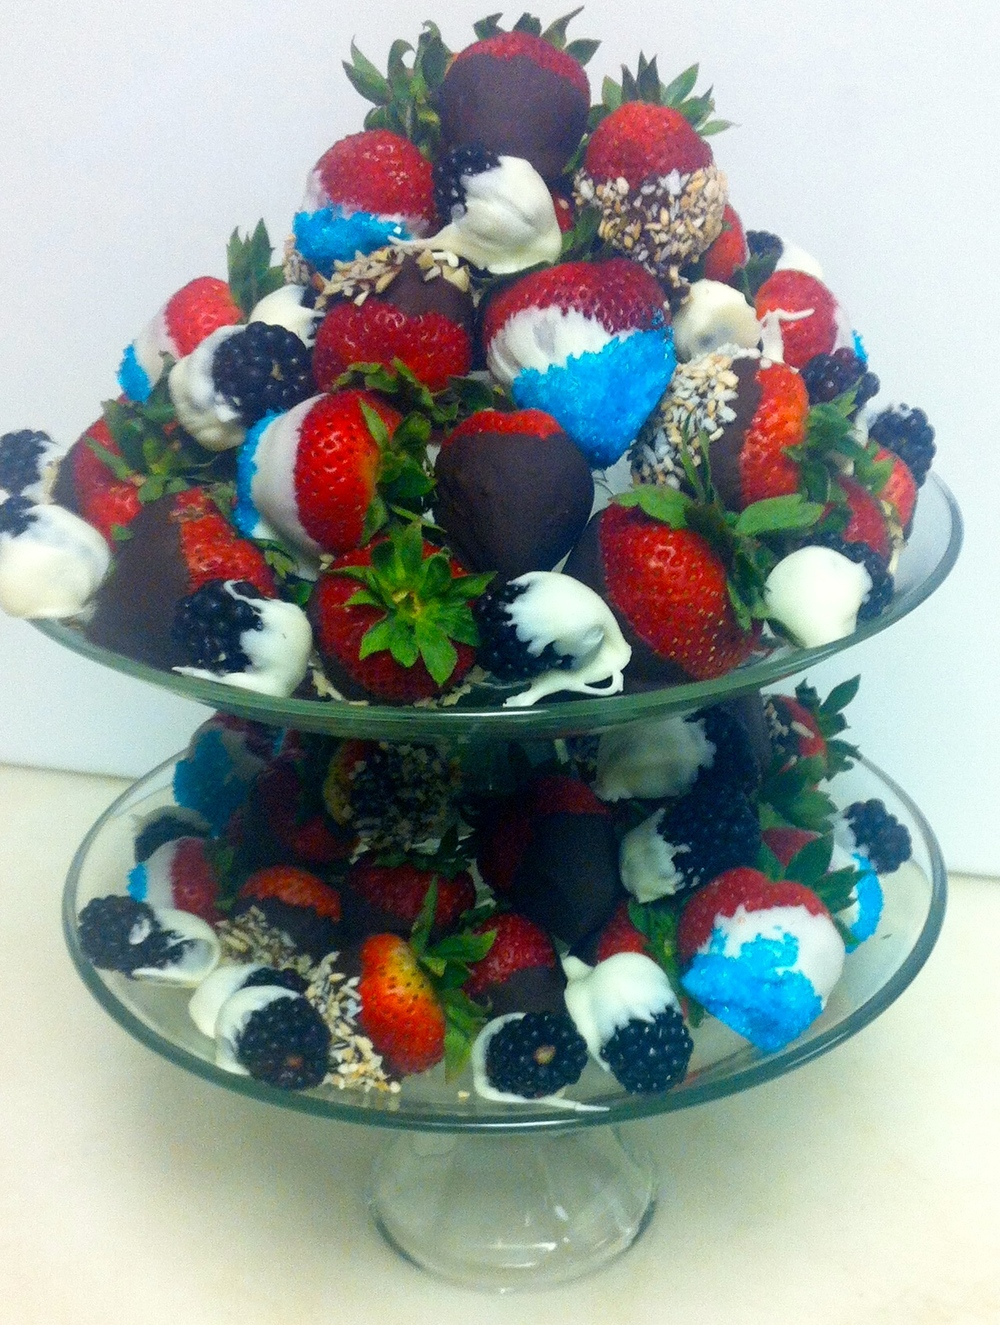 4th of July themed berry tray